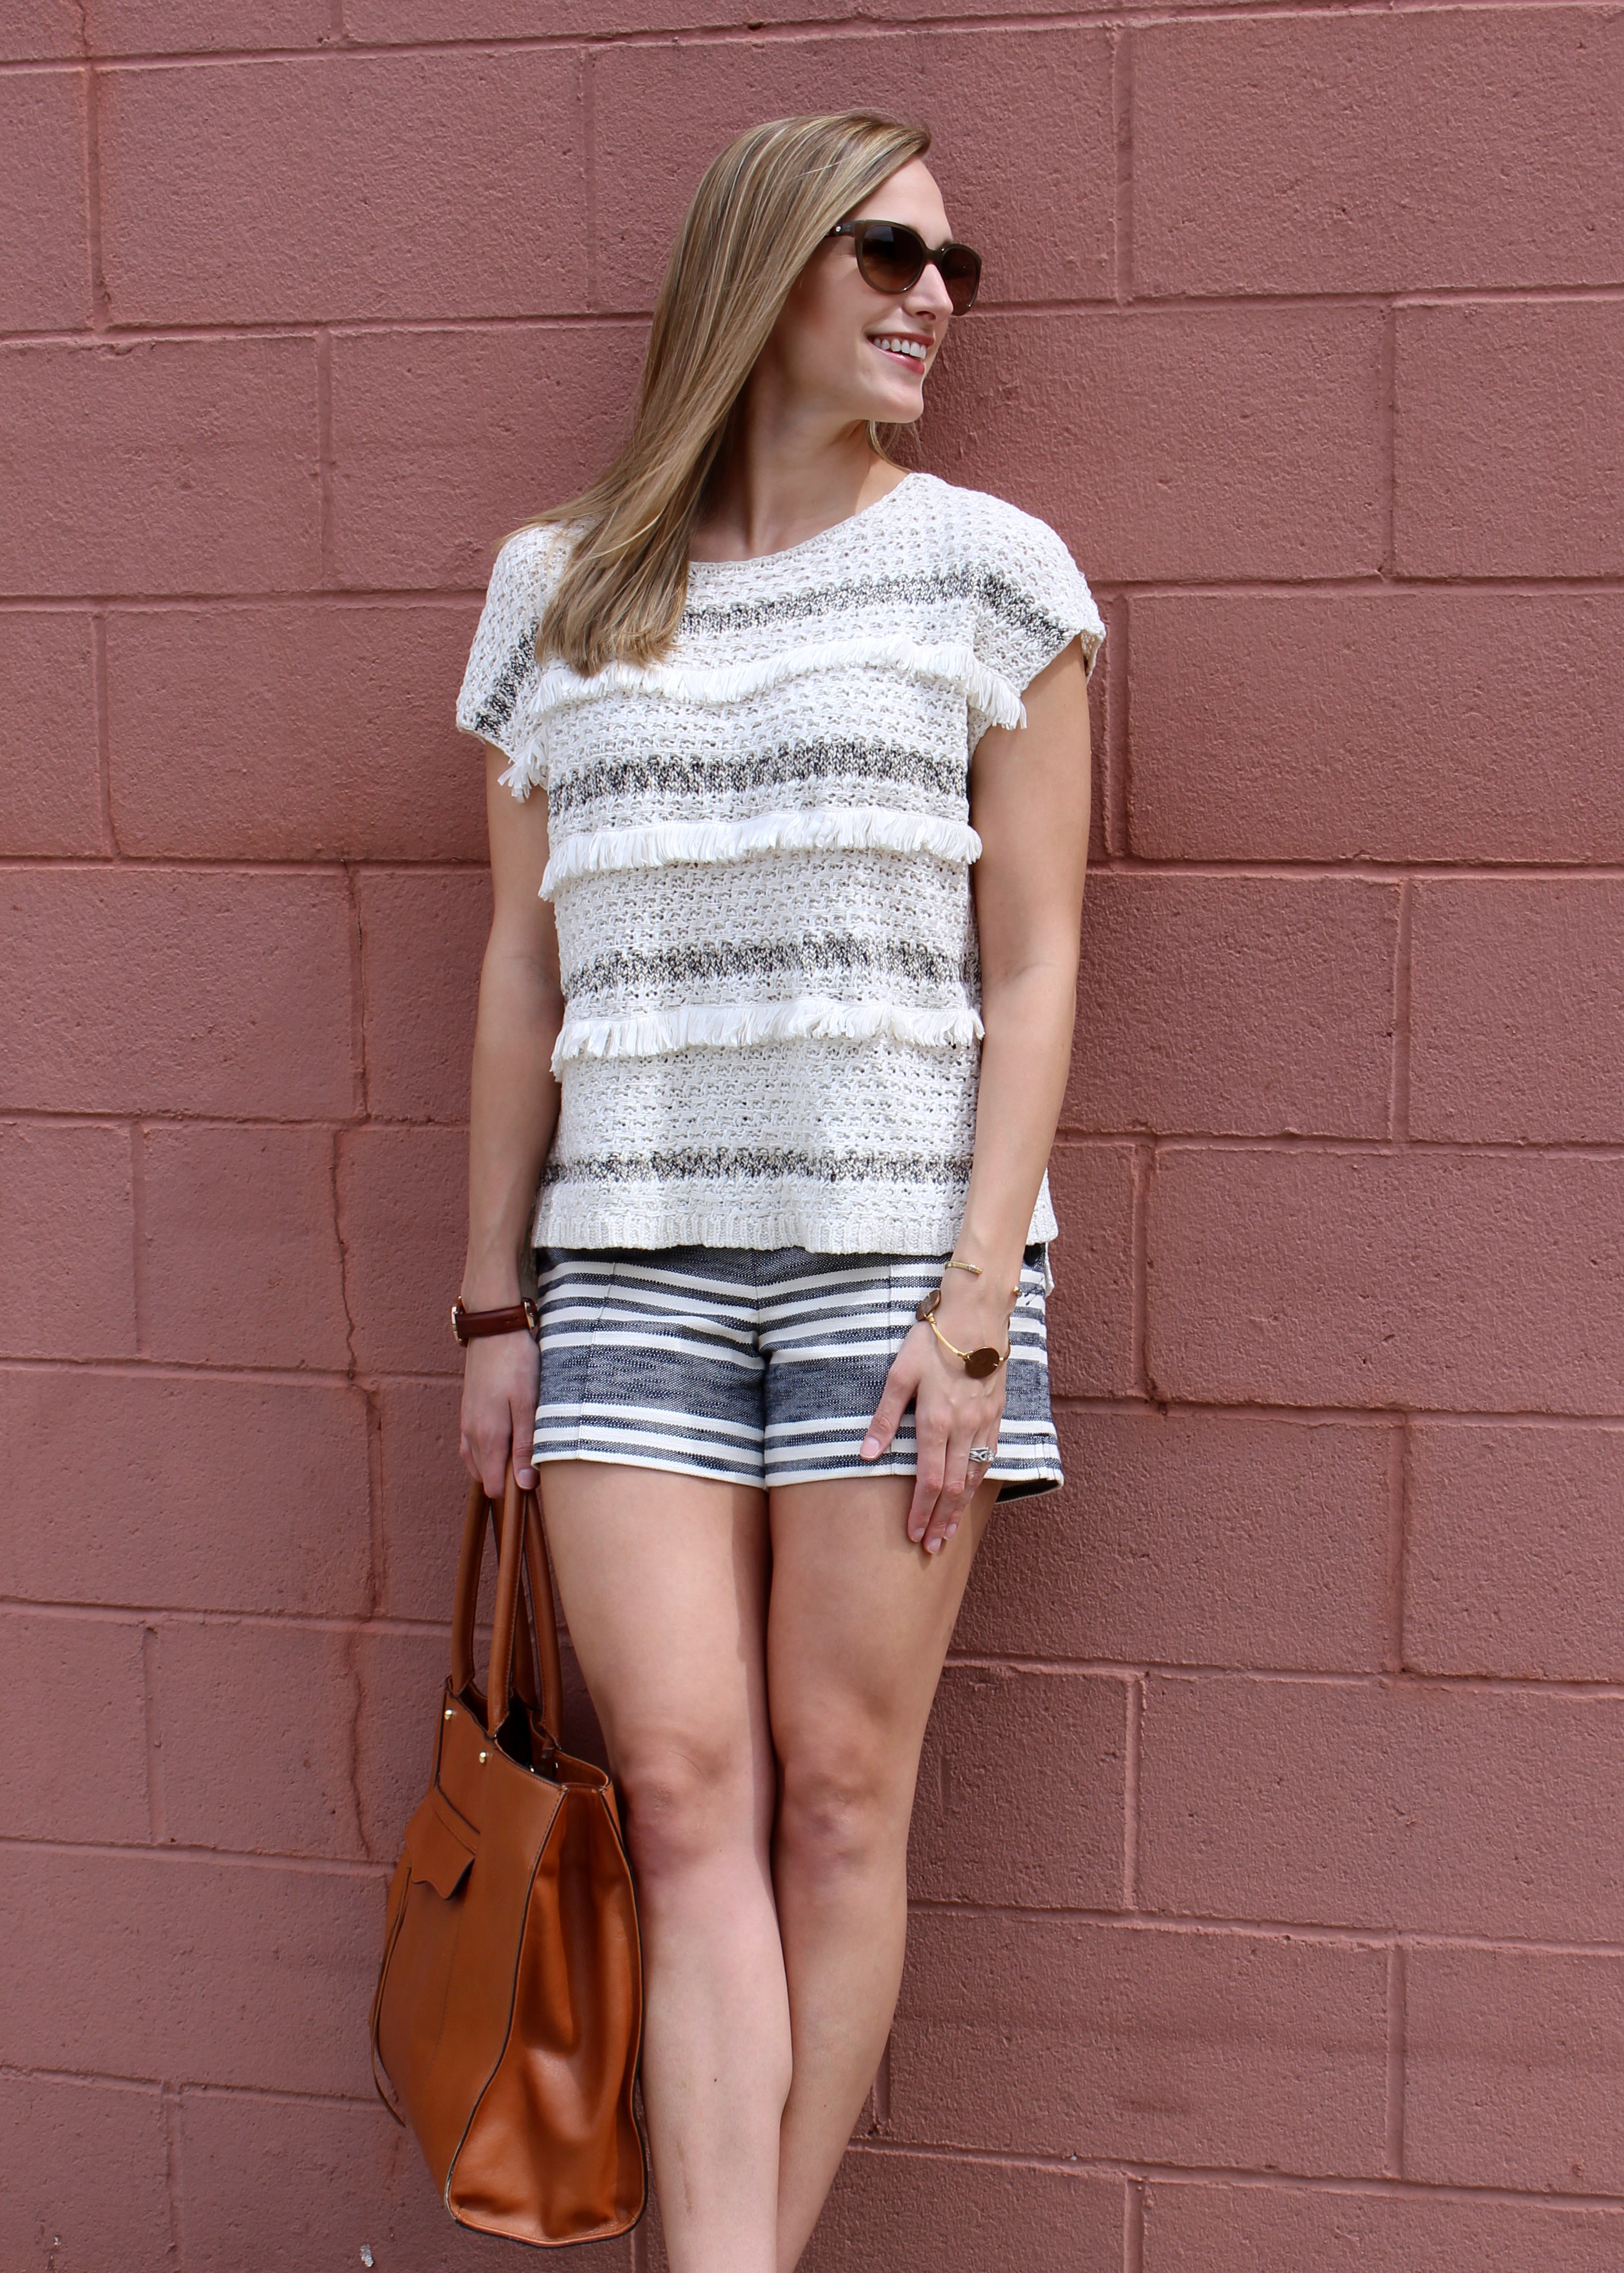 Ann Taylor Loft Top and Shorts